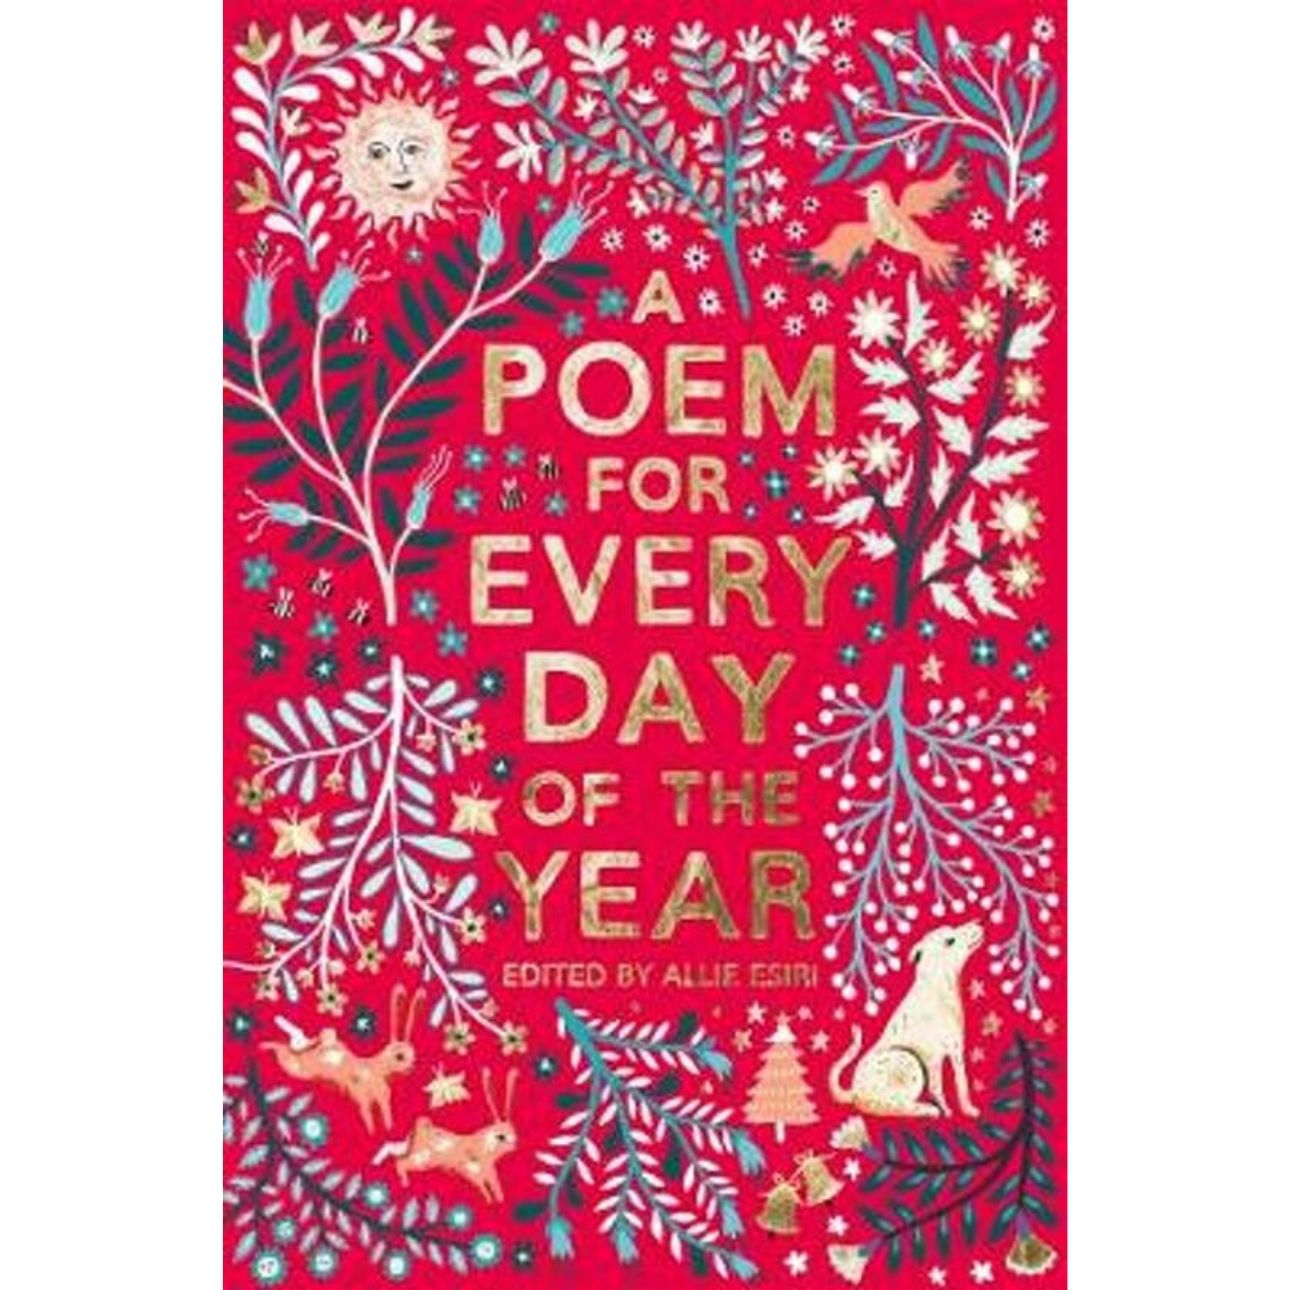 poem for every day of the year dichtbundel